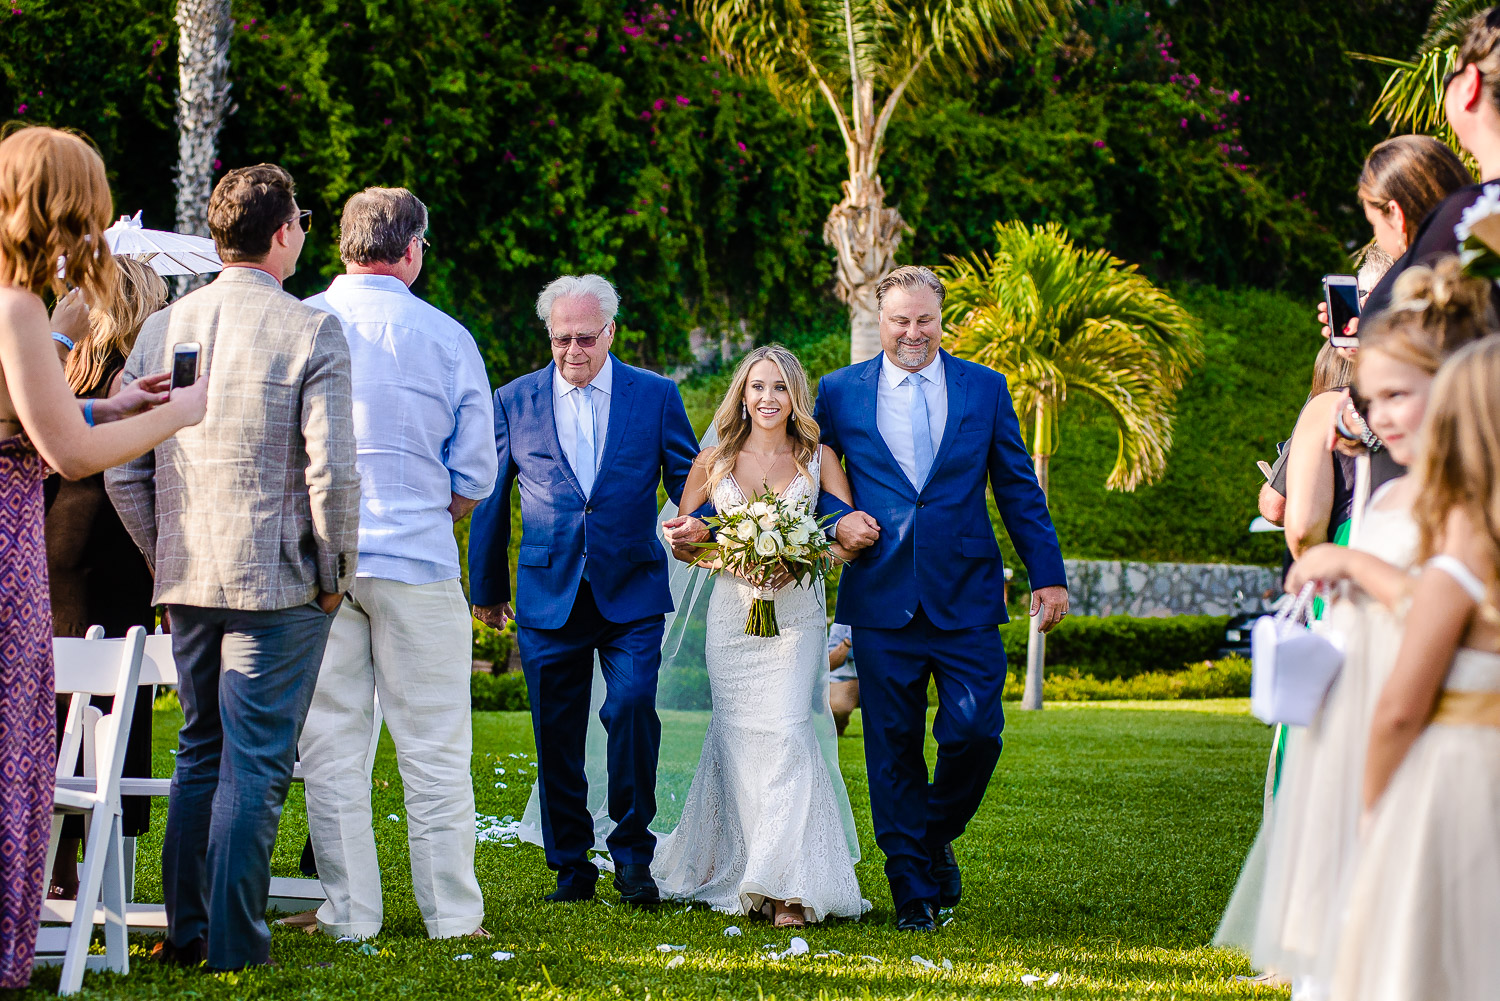 The bride is looking fabulous in her white gown and is smiling while walking in the beautiful garden Pueblo Bonito Sunset. GVphotographer is an amazing destination wedding photographer based in Cabo San Lucas, Mexico